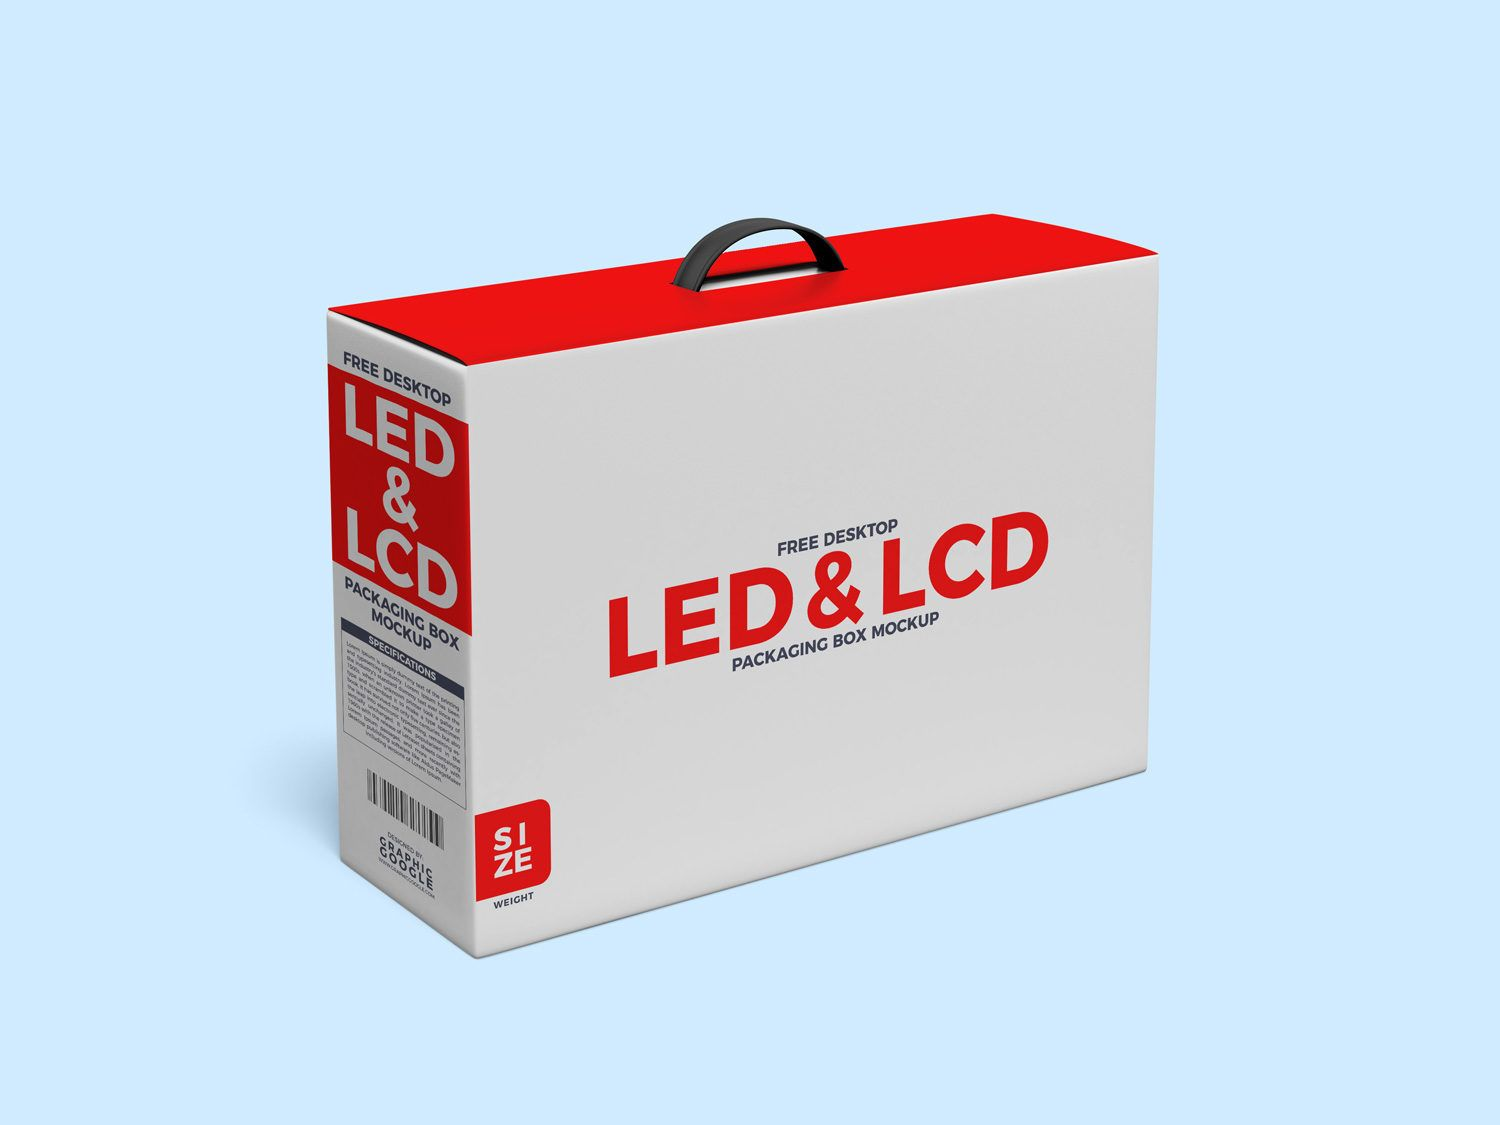 Download Desktop Lcd And Led Packaging Box With Handle Mockup Free Mockup Box Packaging Free Mockup Packaging